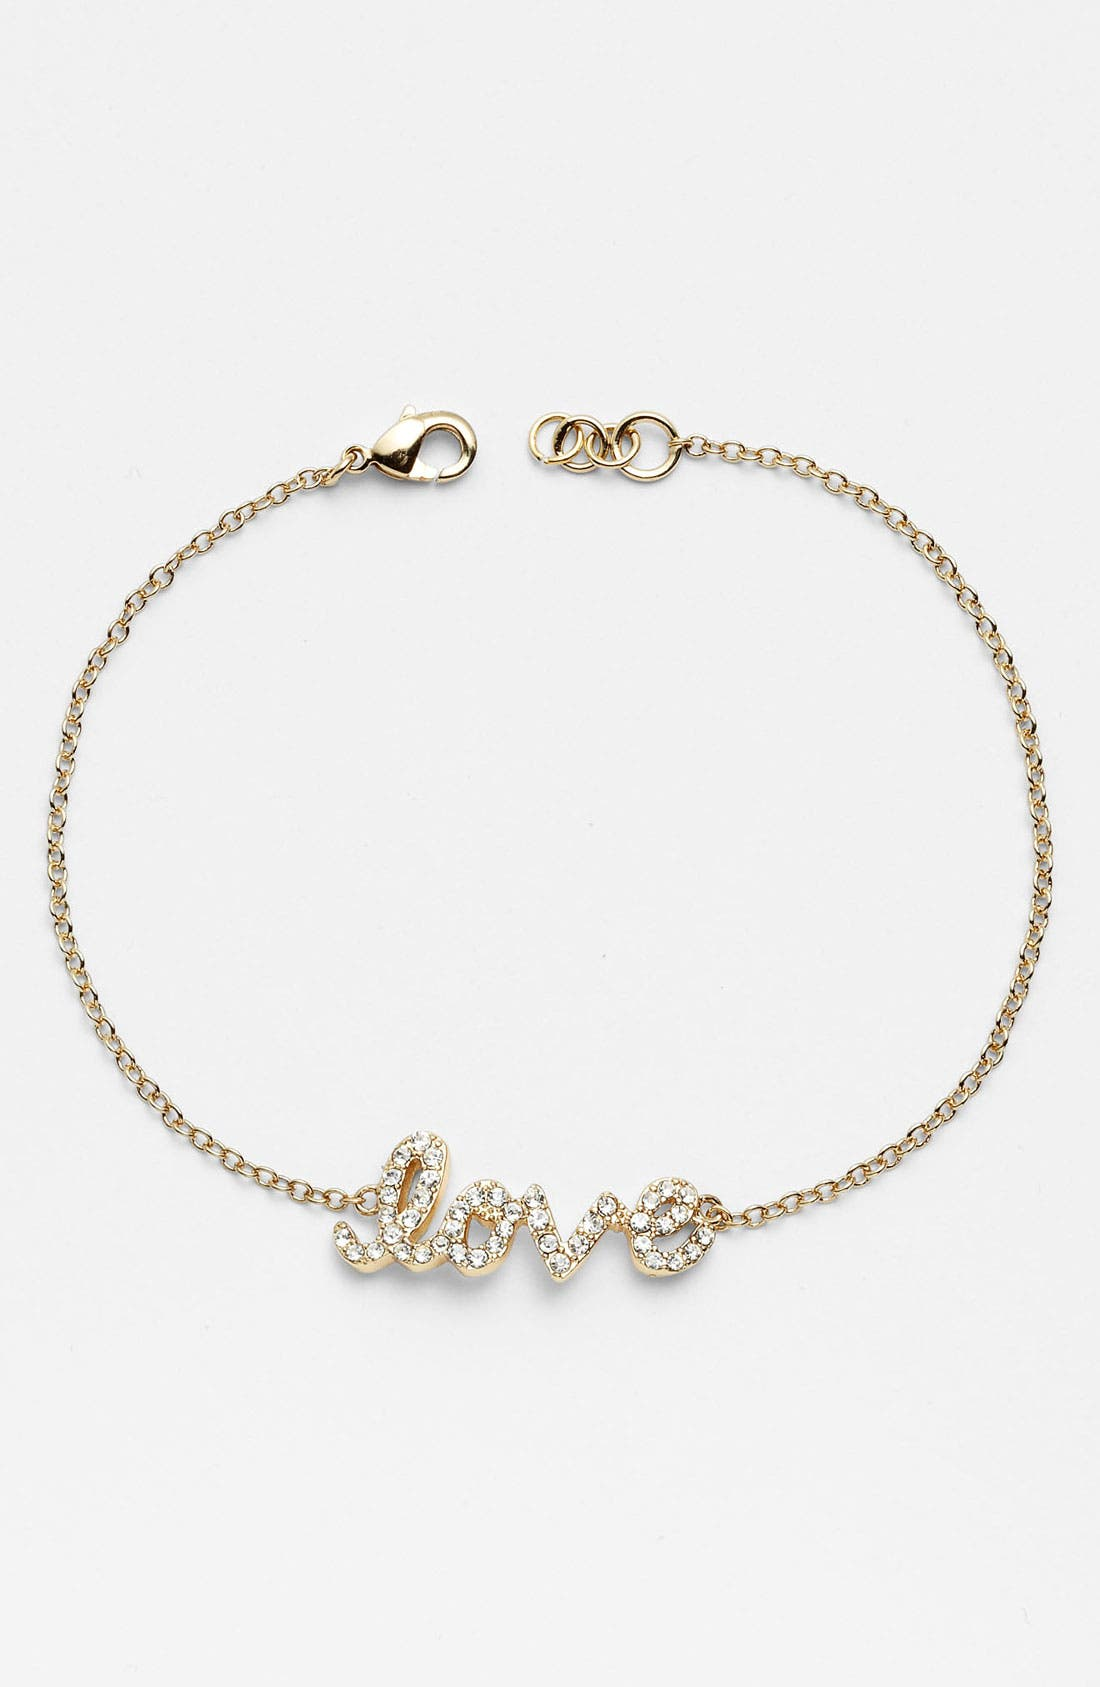 Alternate Image 1 Selected - Ariella Collection 'Messages - Love' Script Station Bracelet